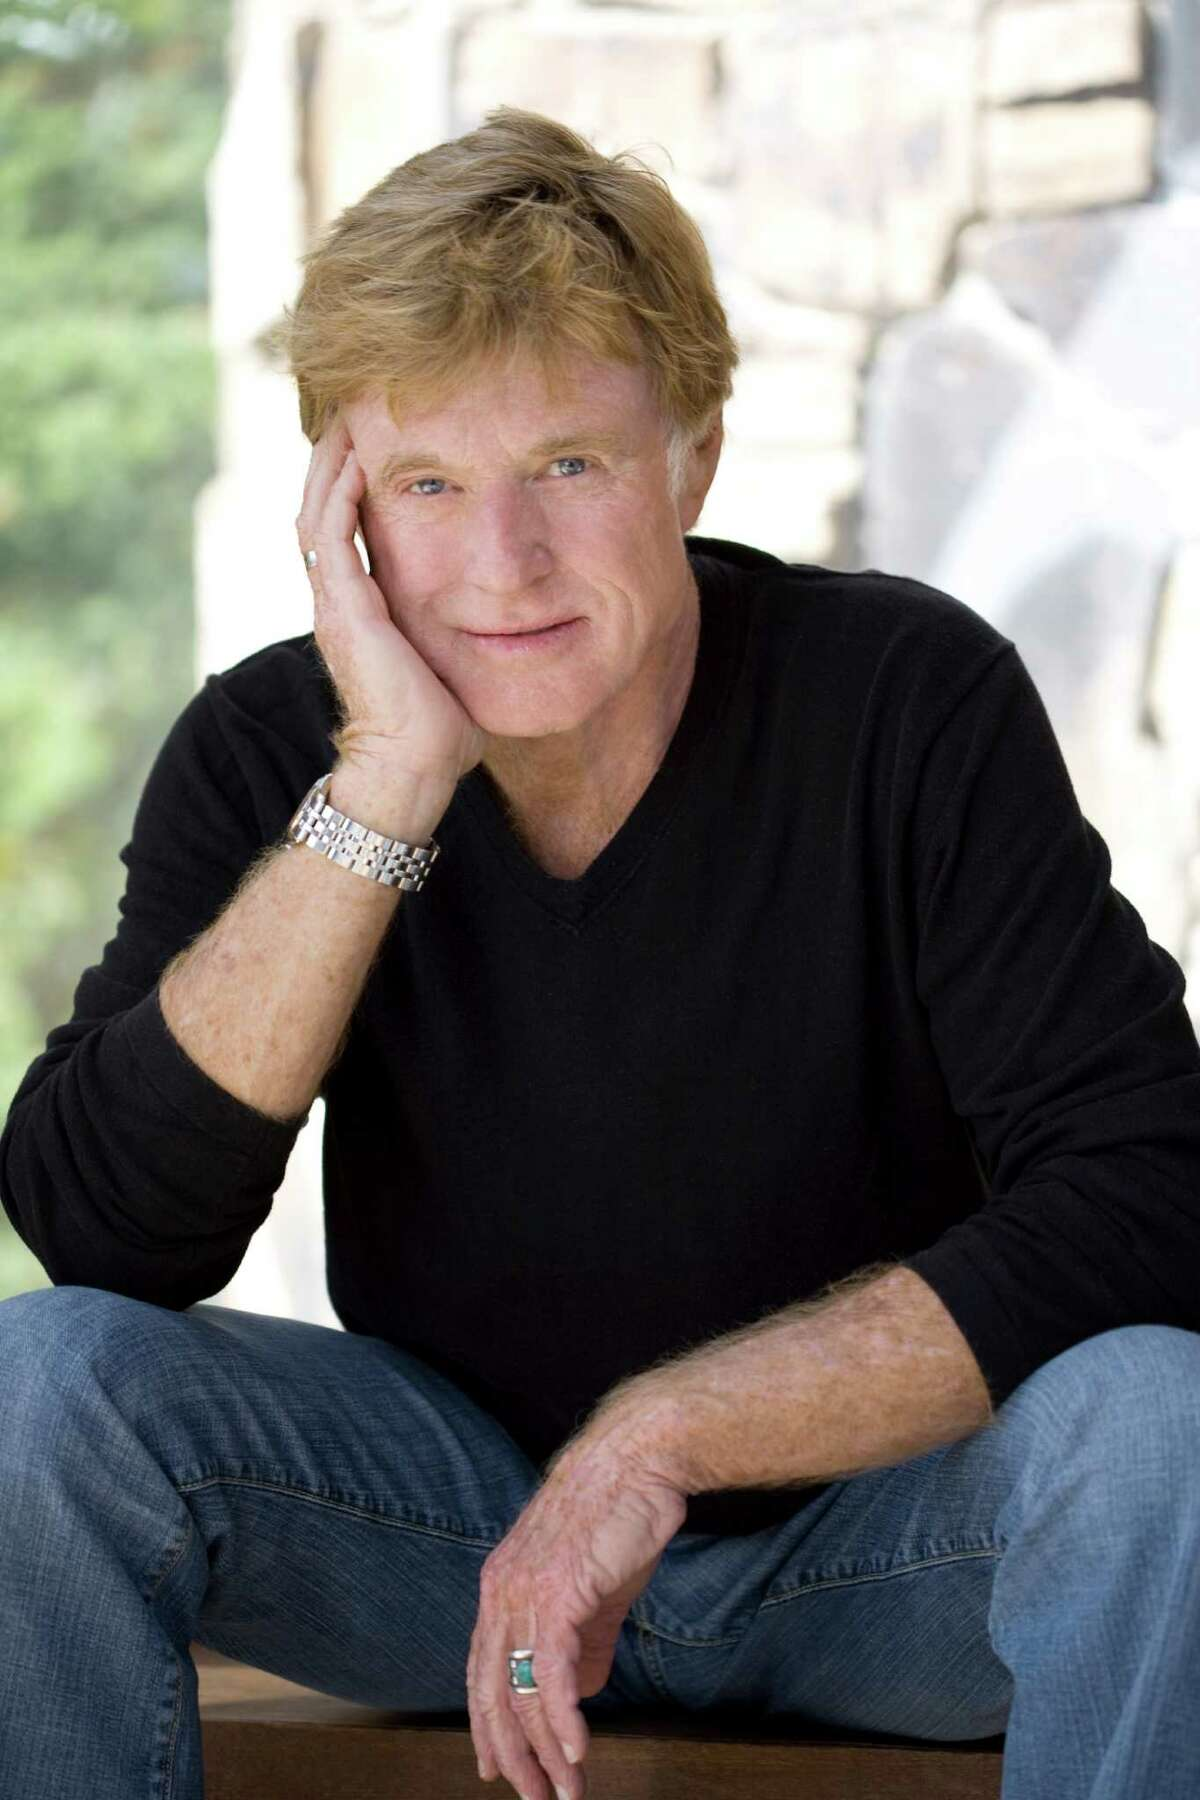 Robert Redford will appear Nov. 9 at the 2012 Cinema Arts Festival, where he'll receive the Levantine Cinema Arts Award and discuss his 50-year career in film.